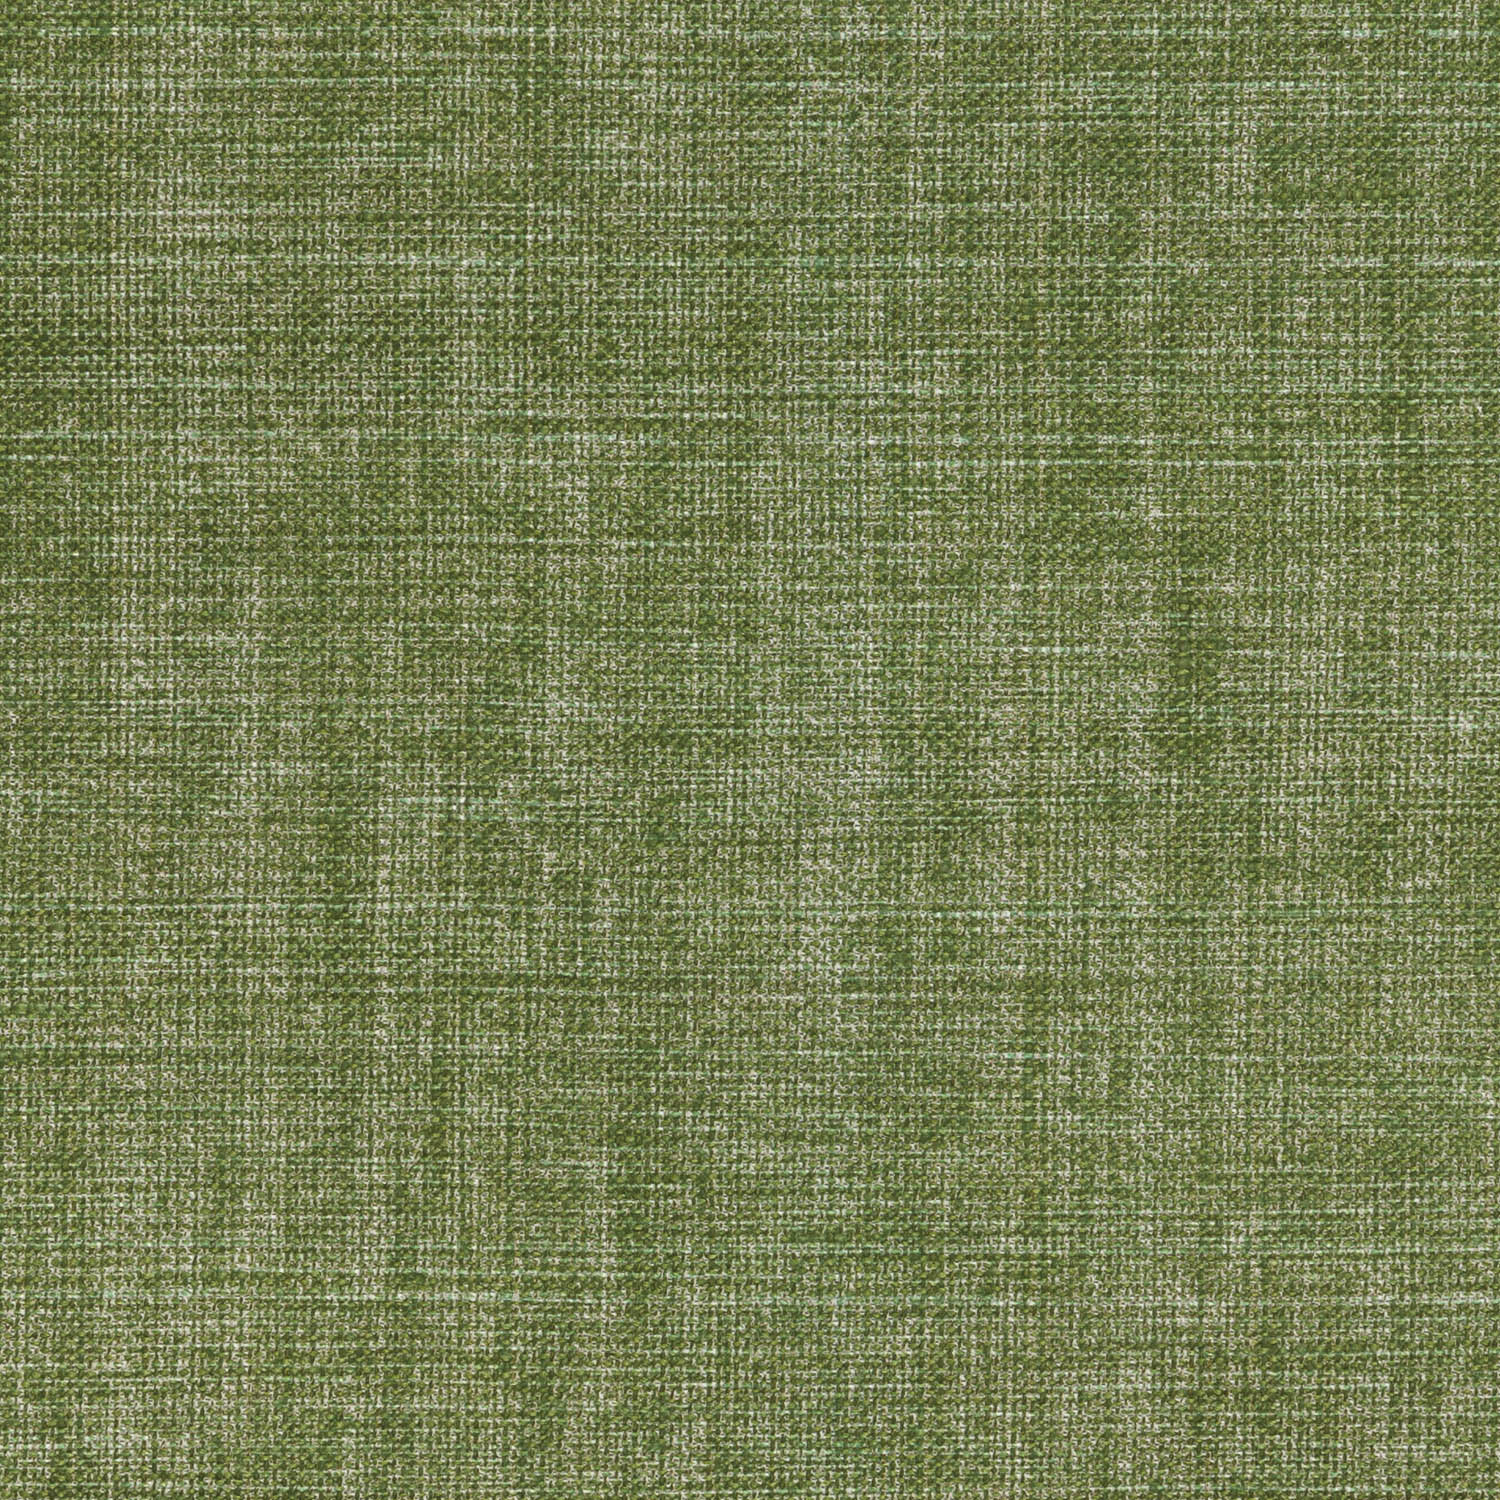 n-026-green-plain-linen-kintyre-green-1